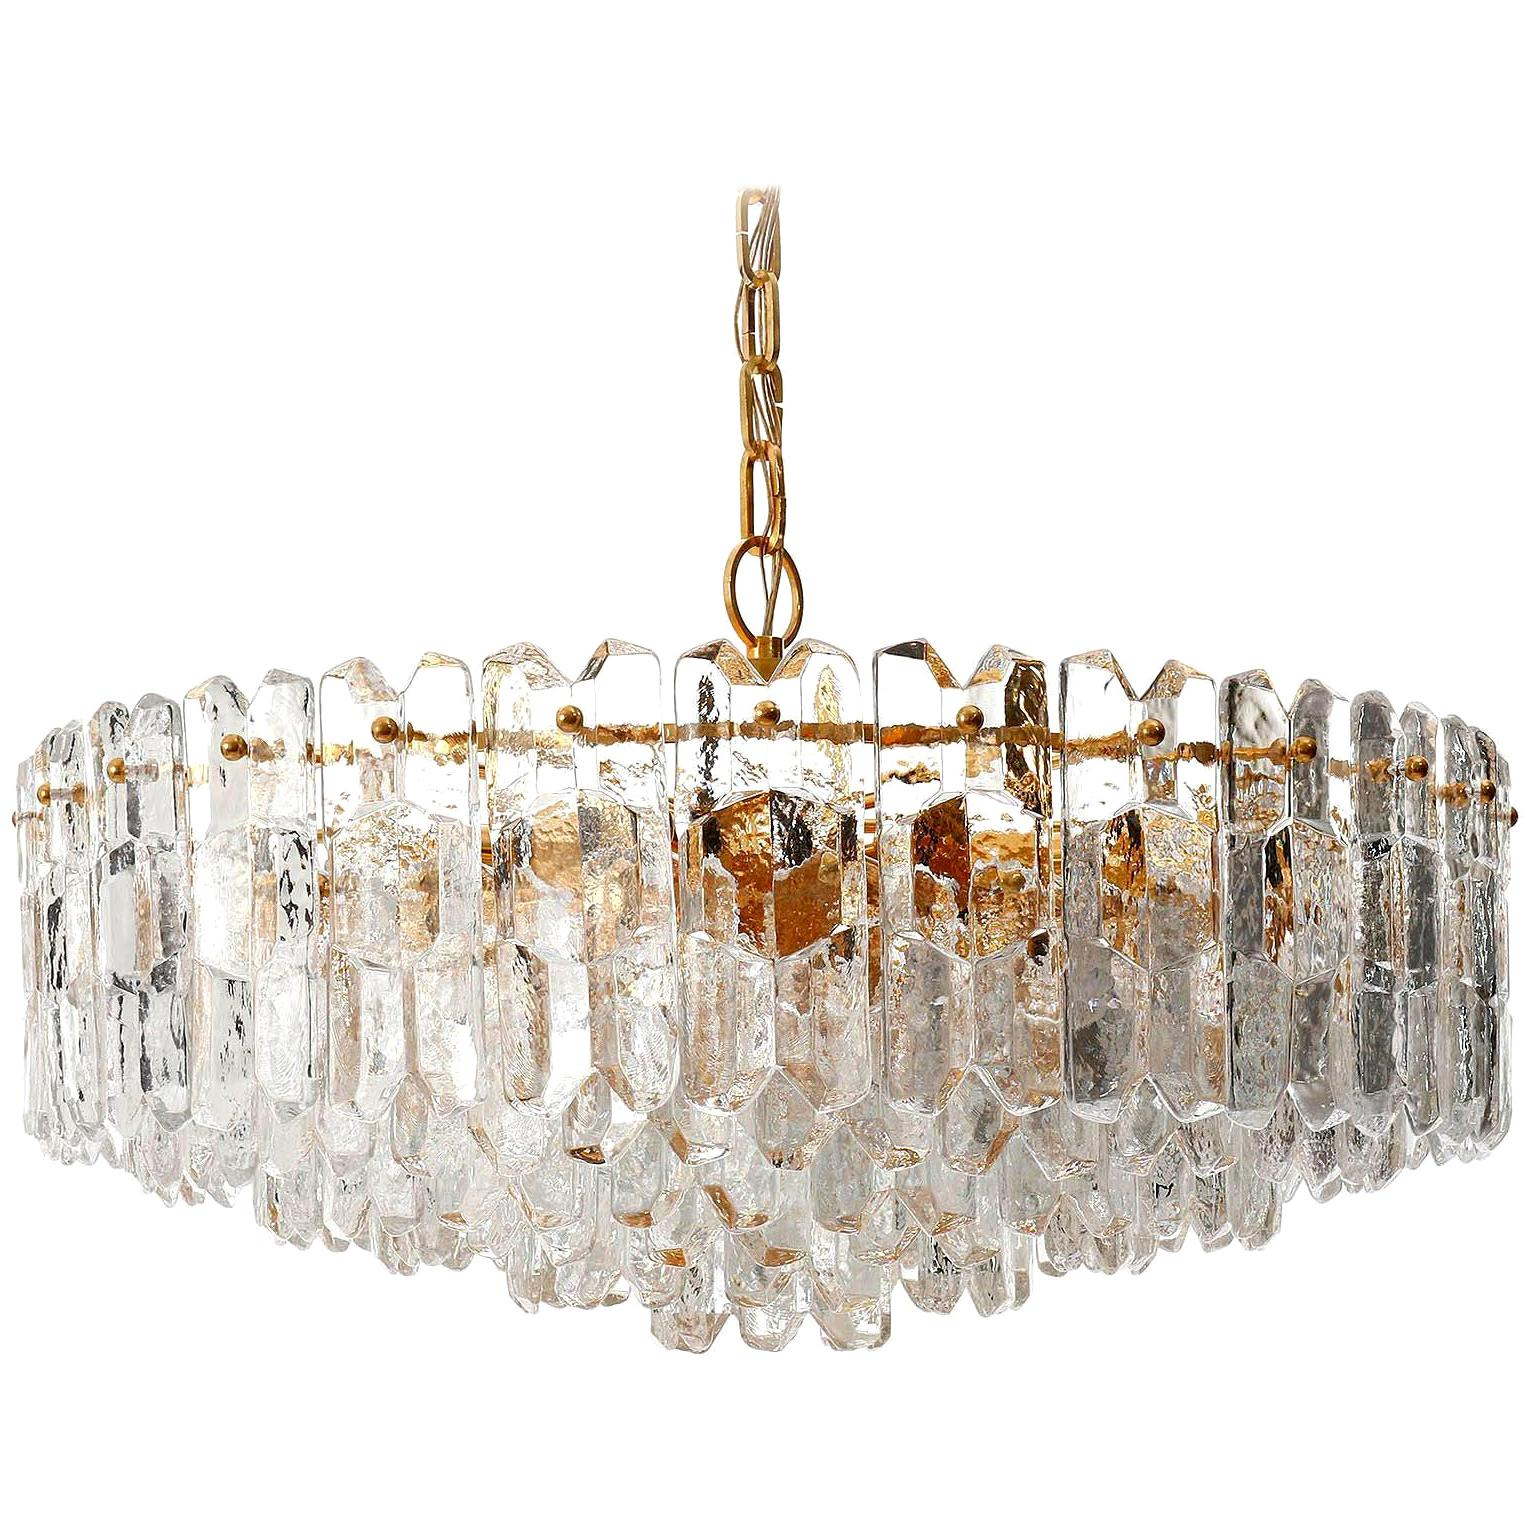 Huge Kalmar Chandelier Pendant Light 'Palazzo', Gilt Brass Glass, Austria, 1970